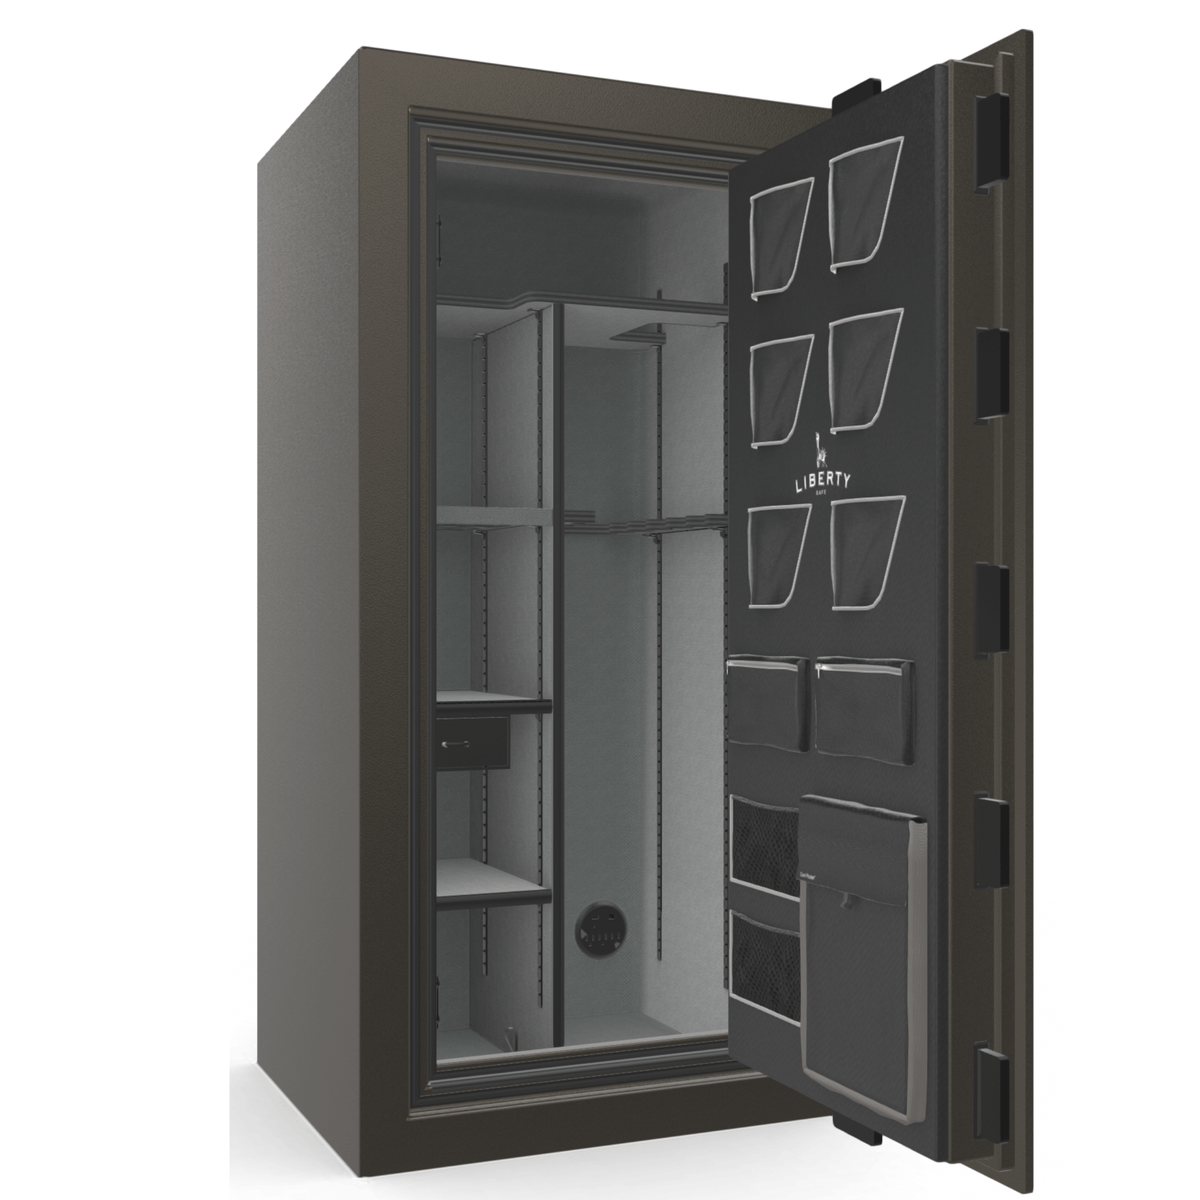 "Classic Plus | 25 | Level 7 Security | 110 Minute Fire Protection | Gray | Black Mechanical Lock | 60.5""(H) x 30""(W) x 29""(D)"